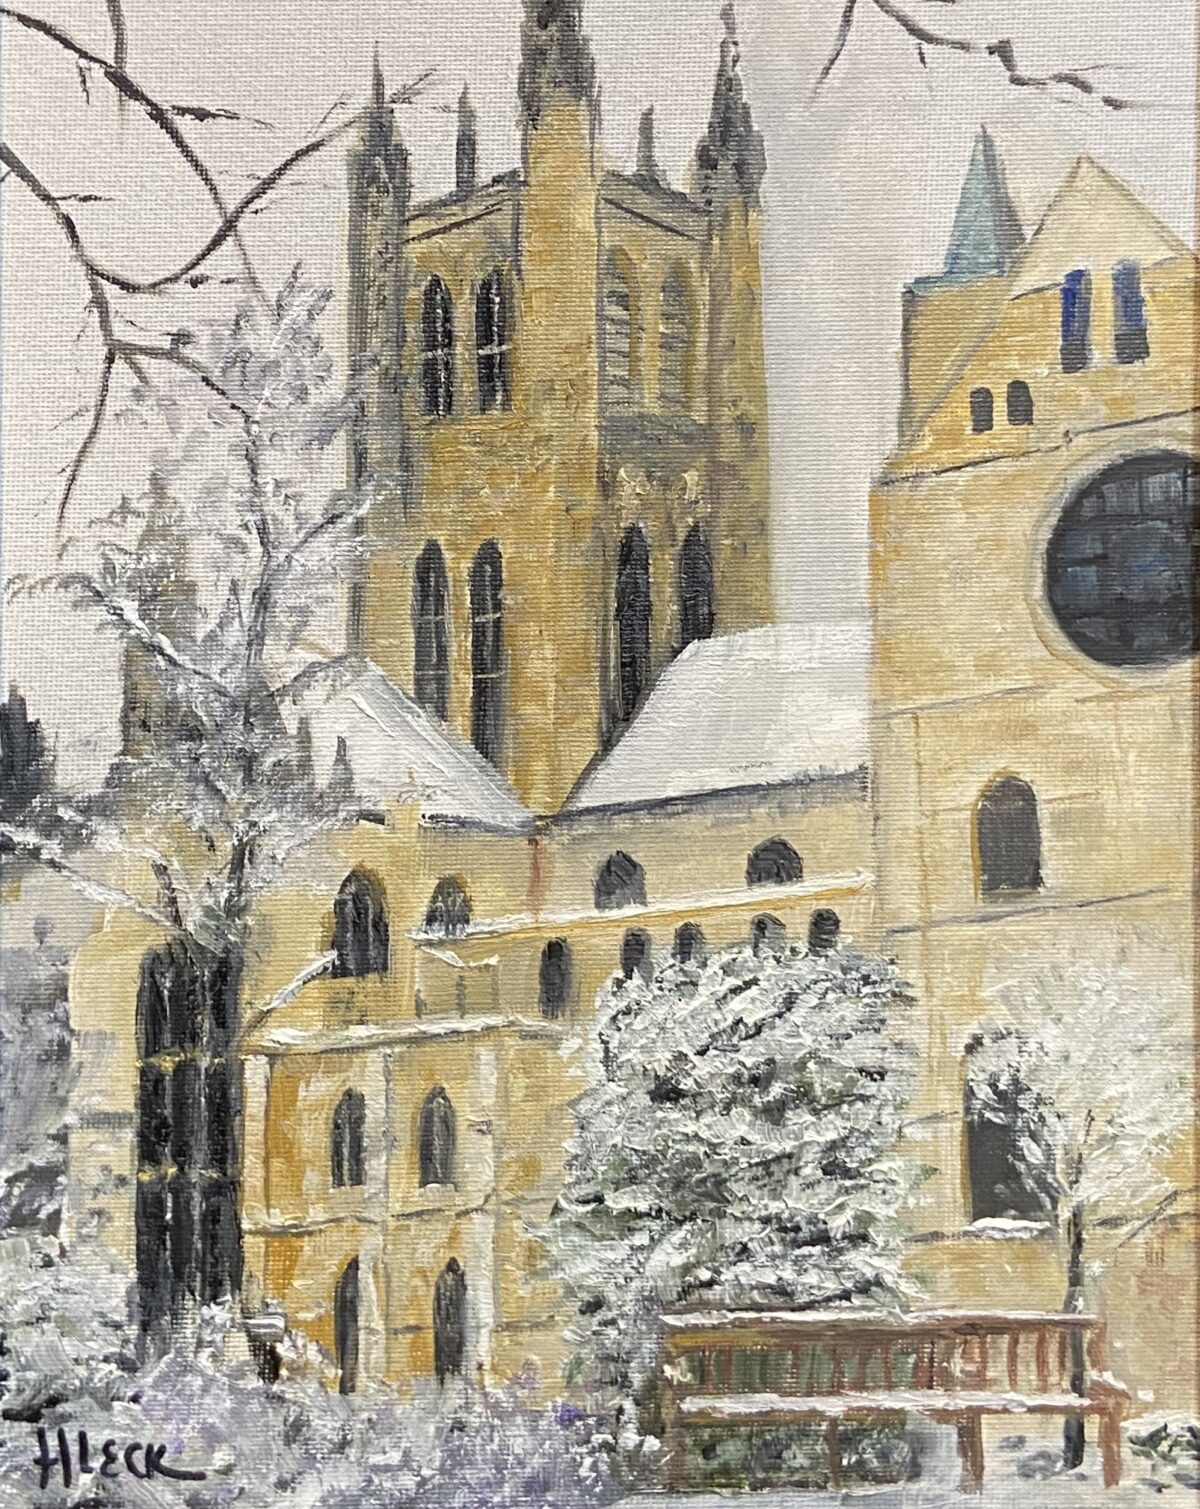 171 - Canterbury in Winter - 11 x 14 - Architecture - $325 - Not Available